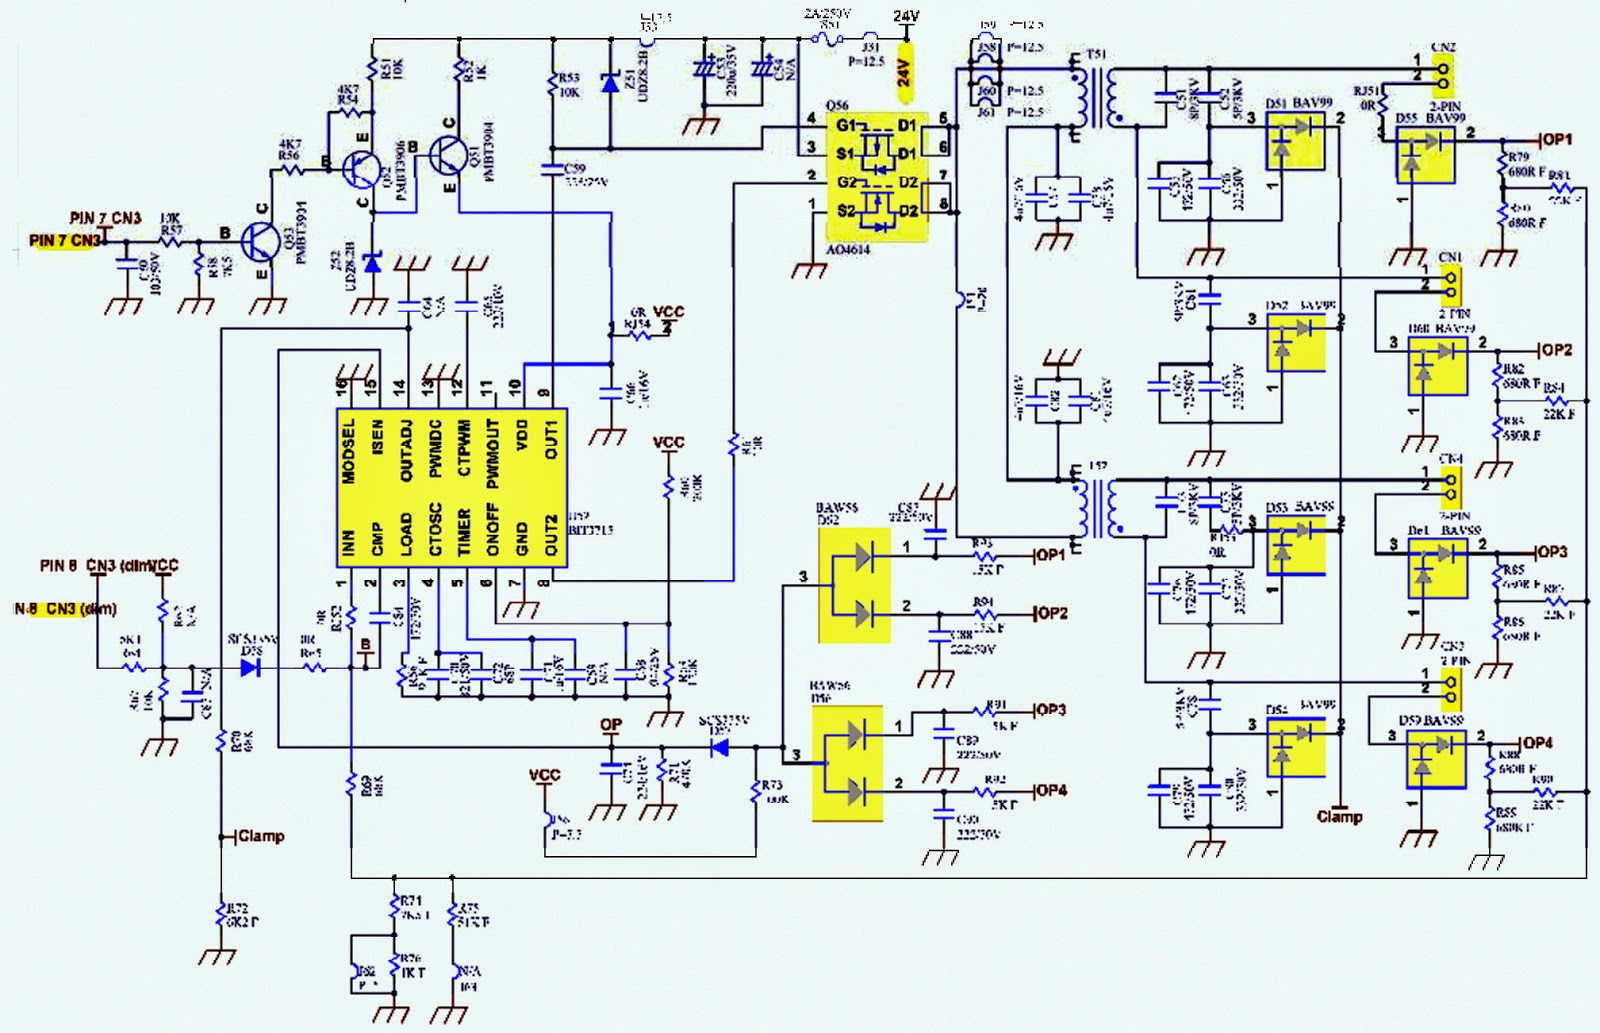 toshiba laptop power supply circuit diagram wiring. Black Bedroom Furniture Sets. Home Design Ideas